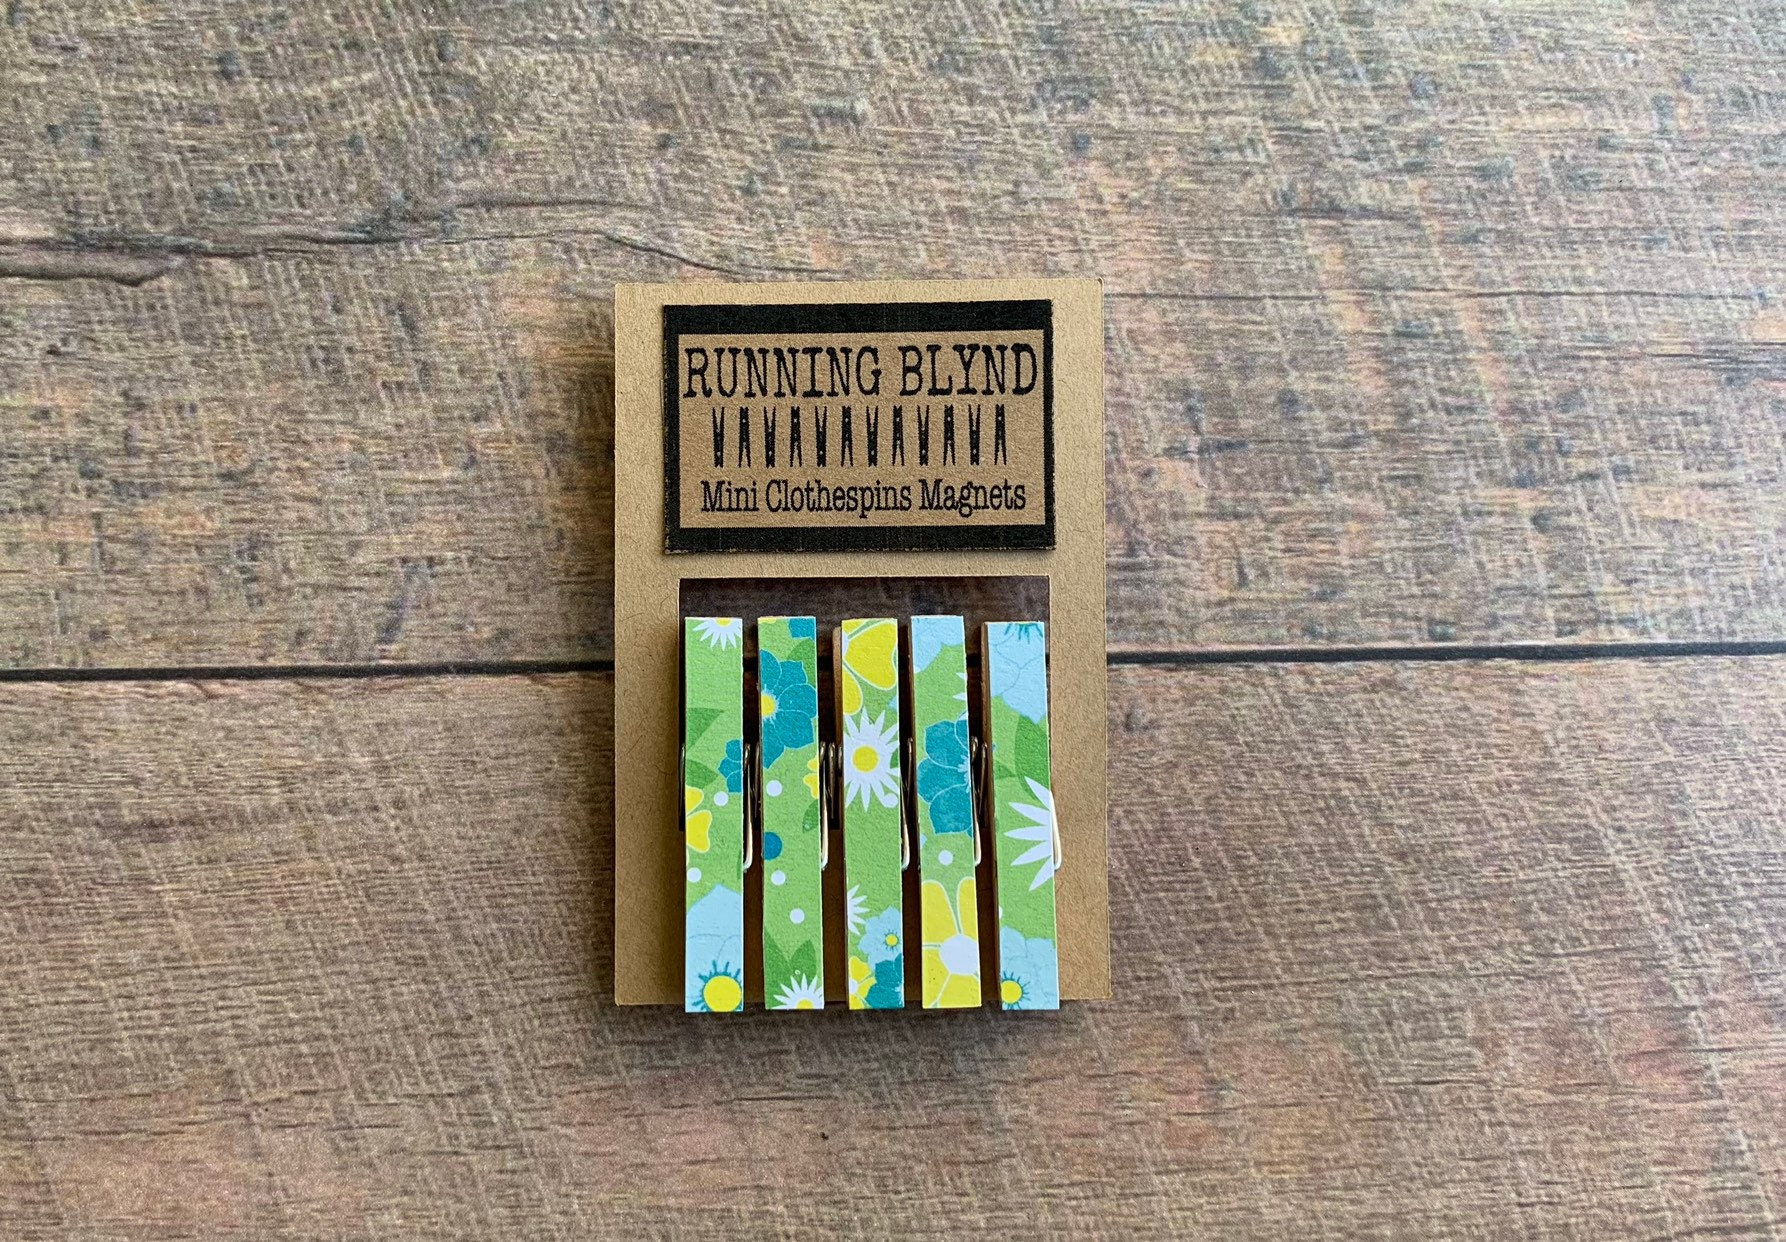 Mini Clothespins Magnets Vintage Vibe Blue Floral Green